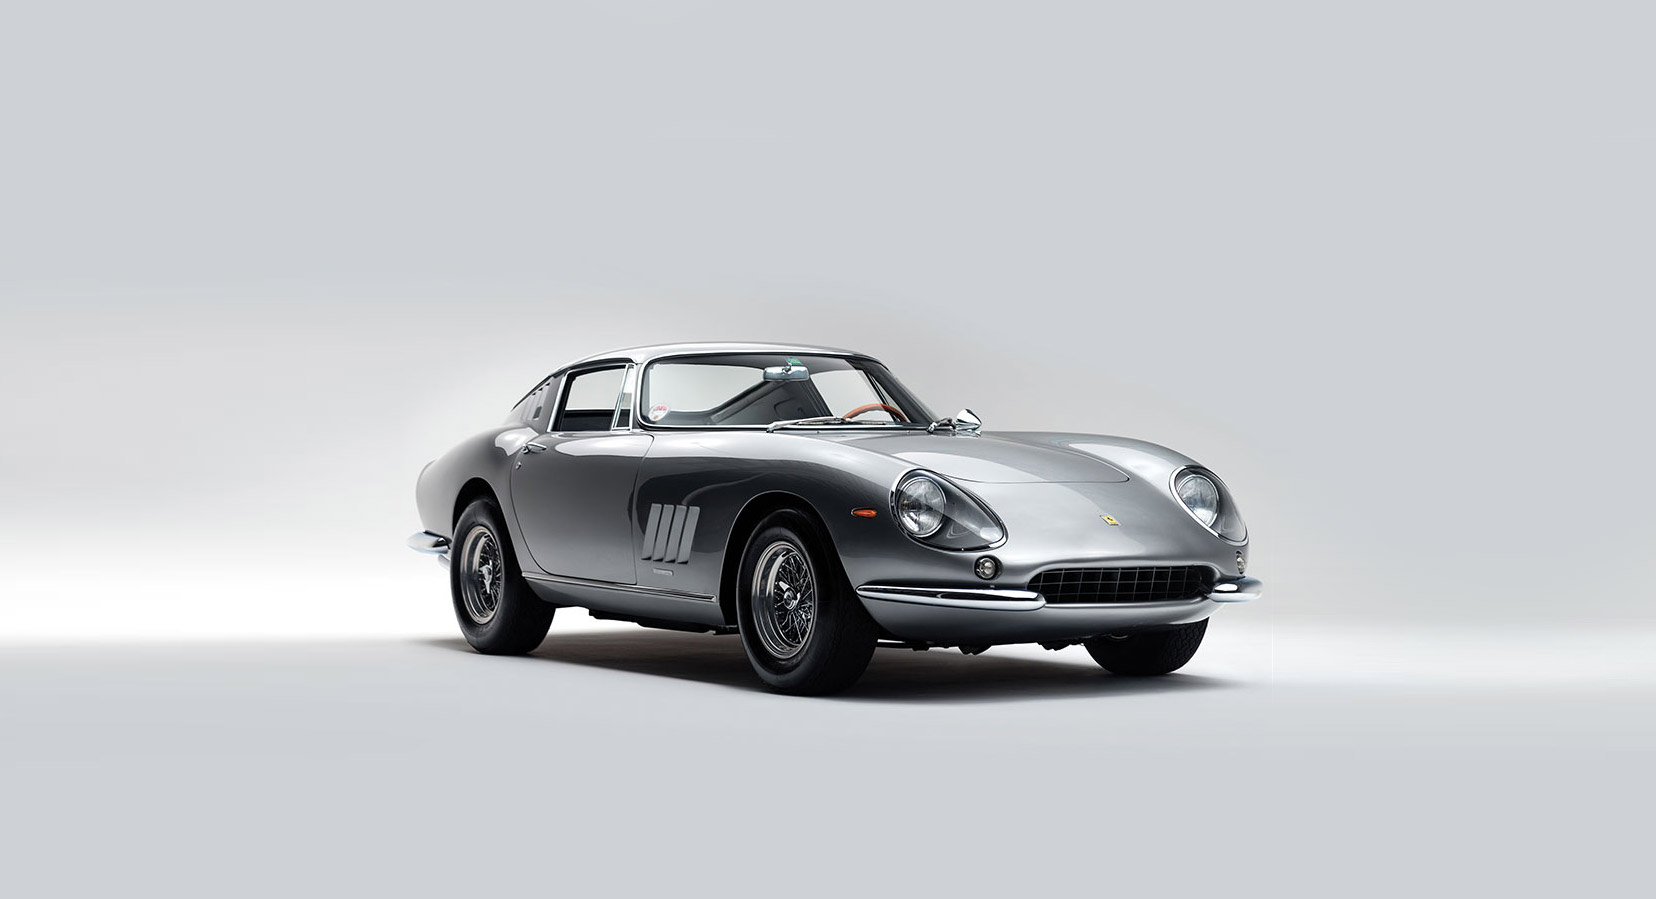 Classic Car Find of the Week: 1965 Ferrari 275 GTB/6C Alloy by Scaglietti